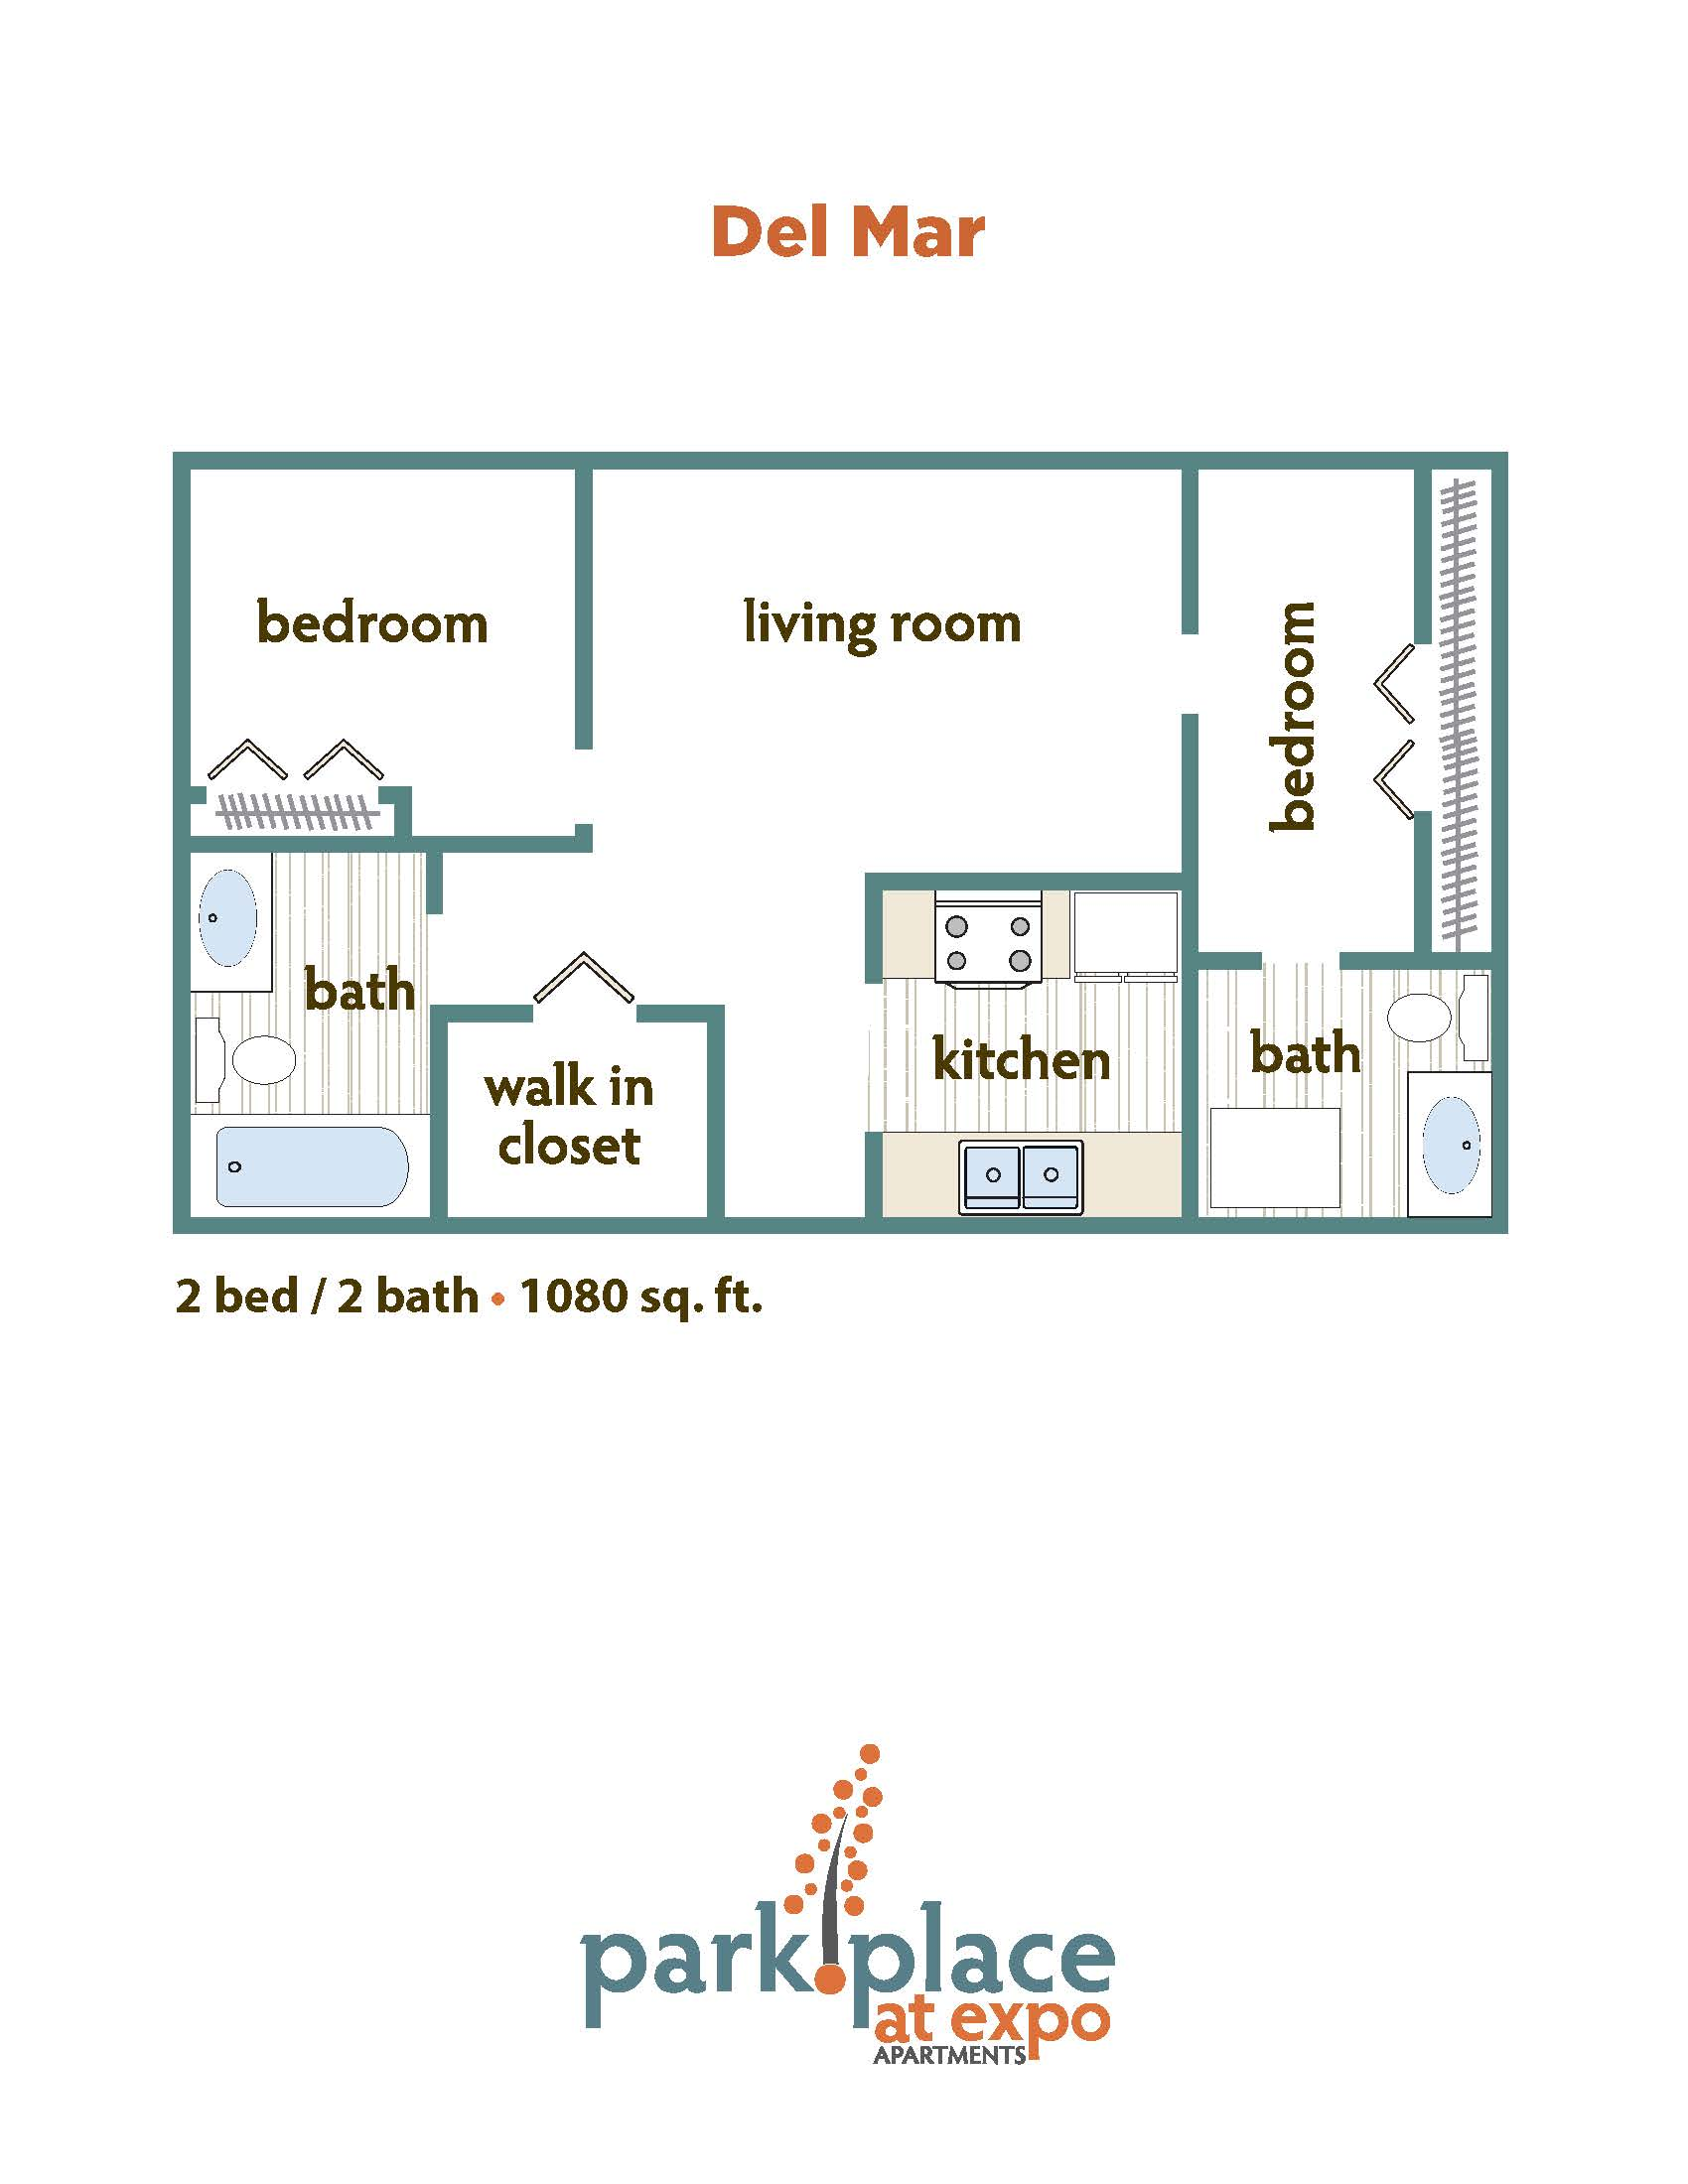 Del Mar floorplan